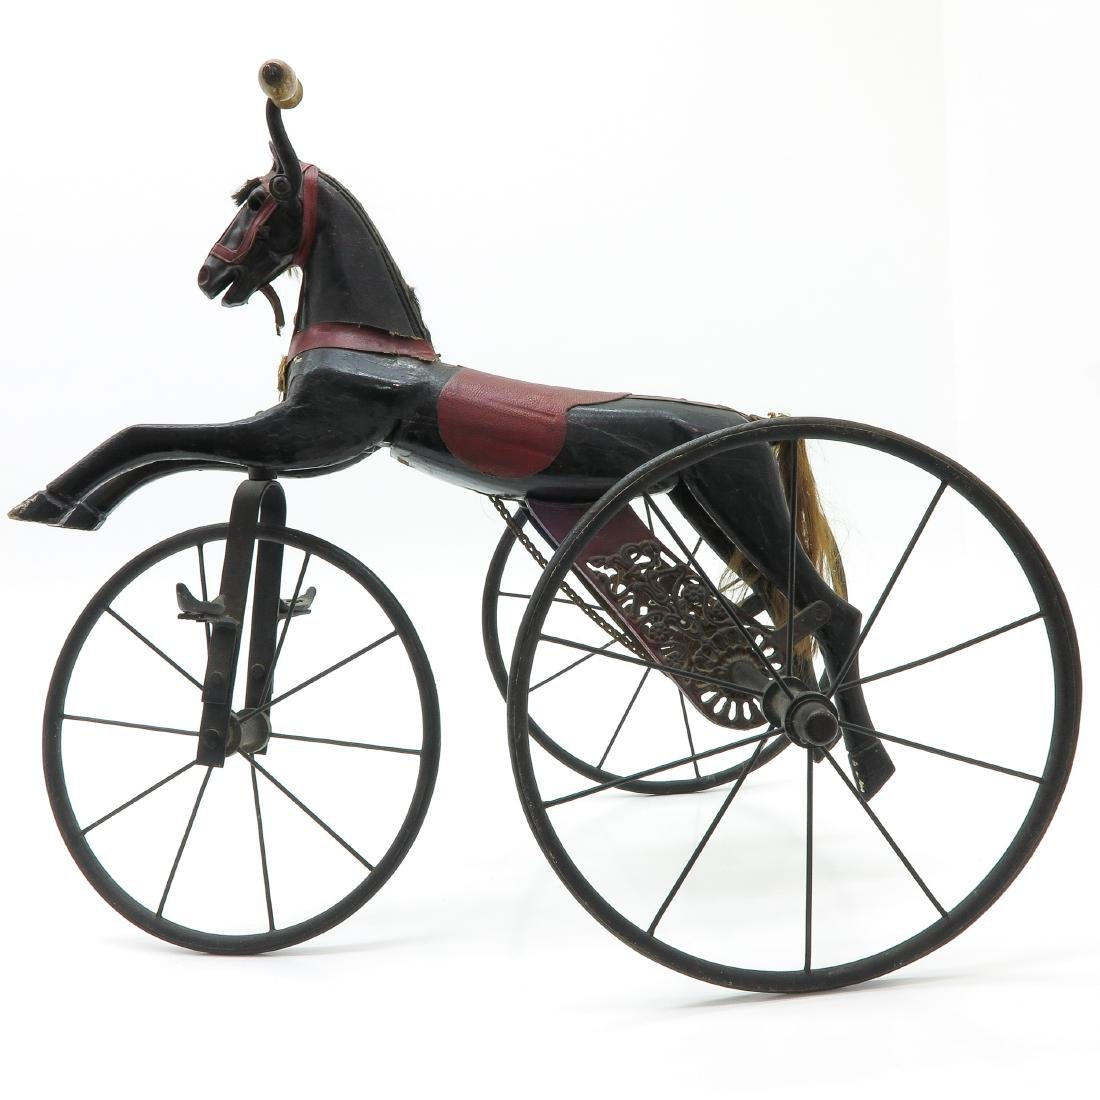 A Nice Antique French Toy Horse on Wheels Circa 1880 - 3